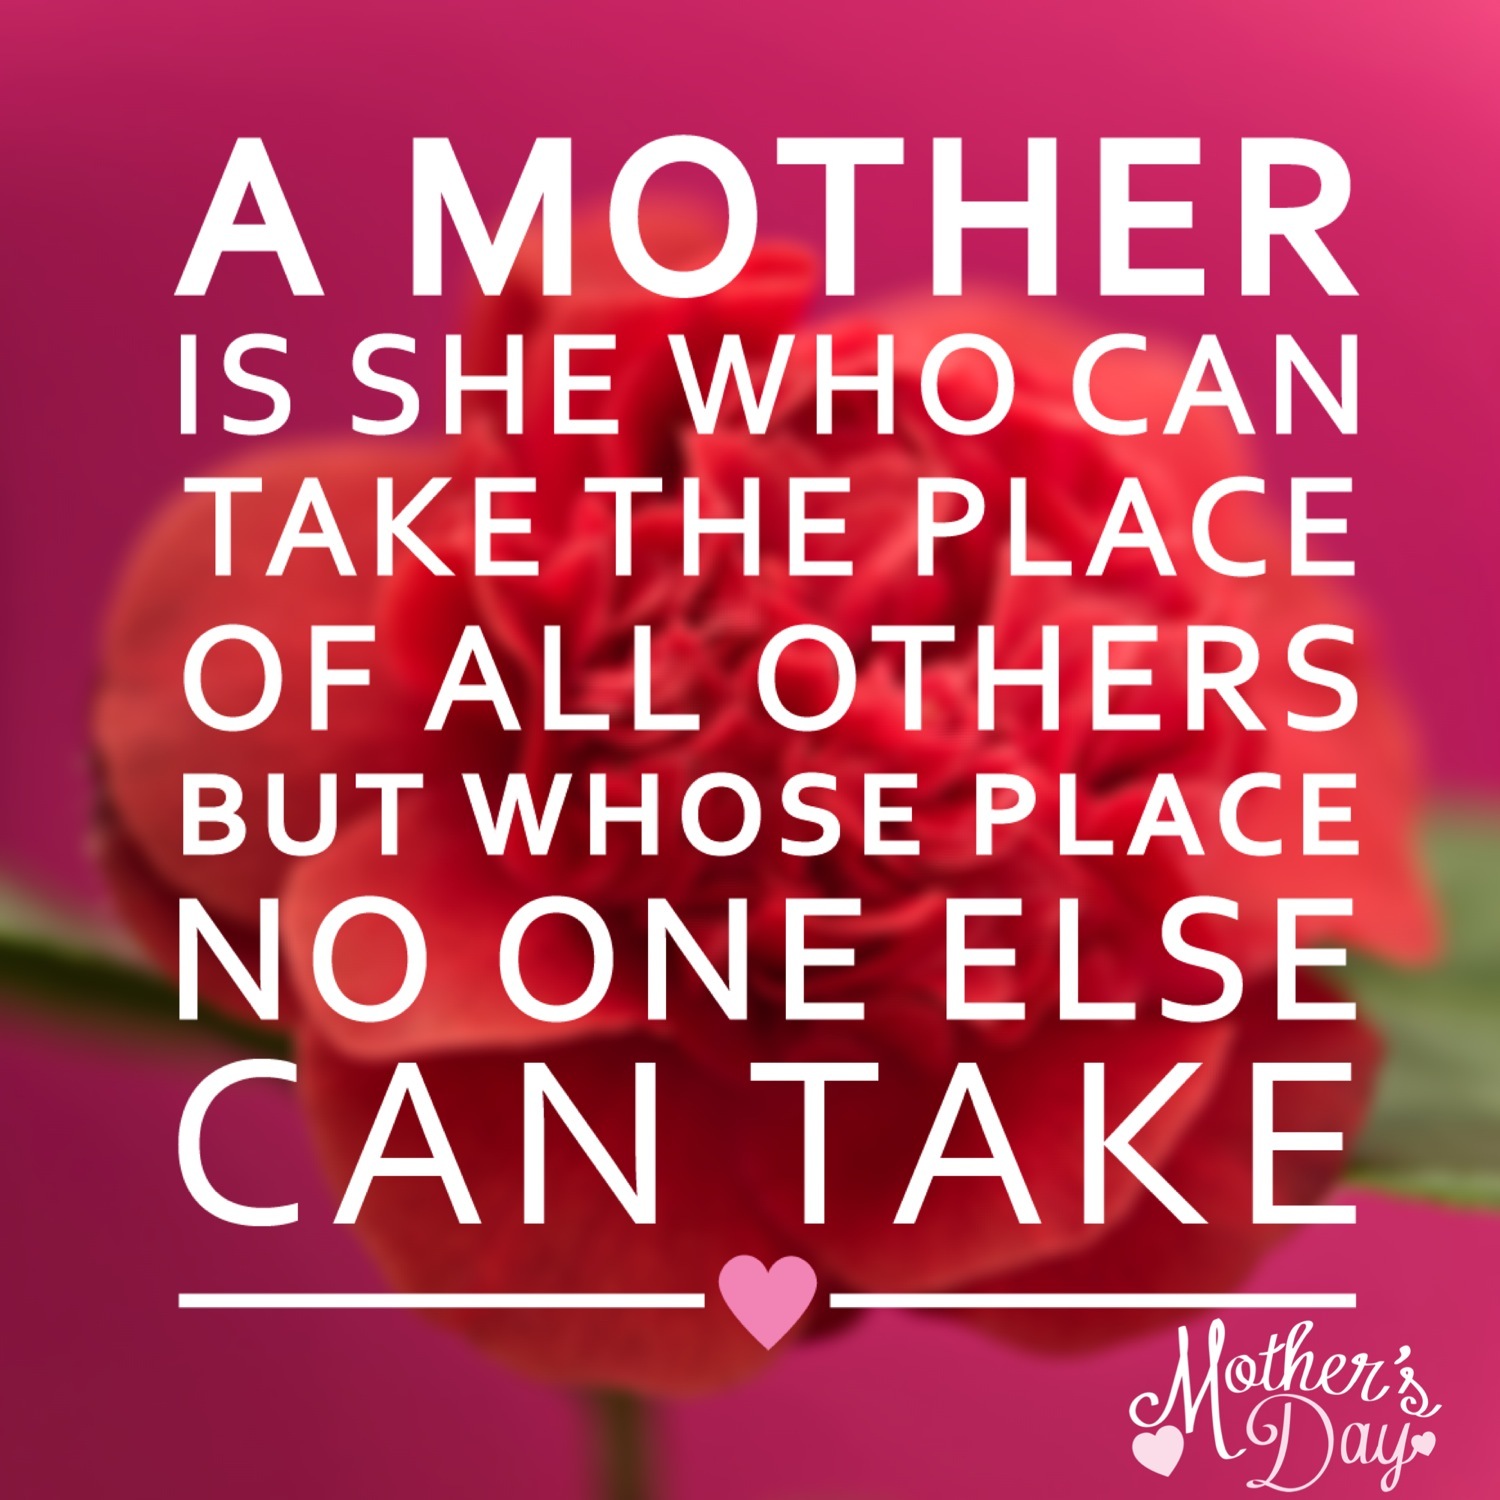 Best Mothers Day Pic Inspirational Quotes